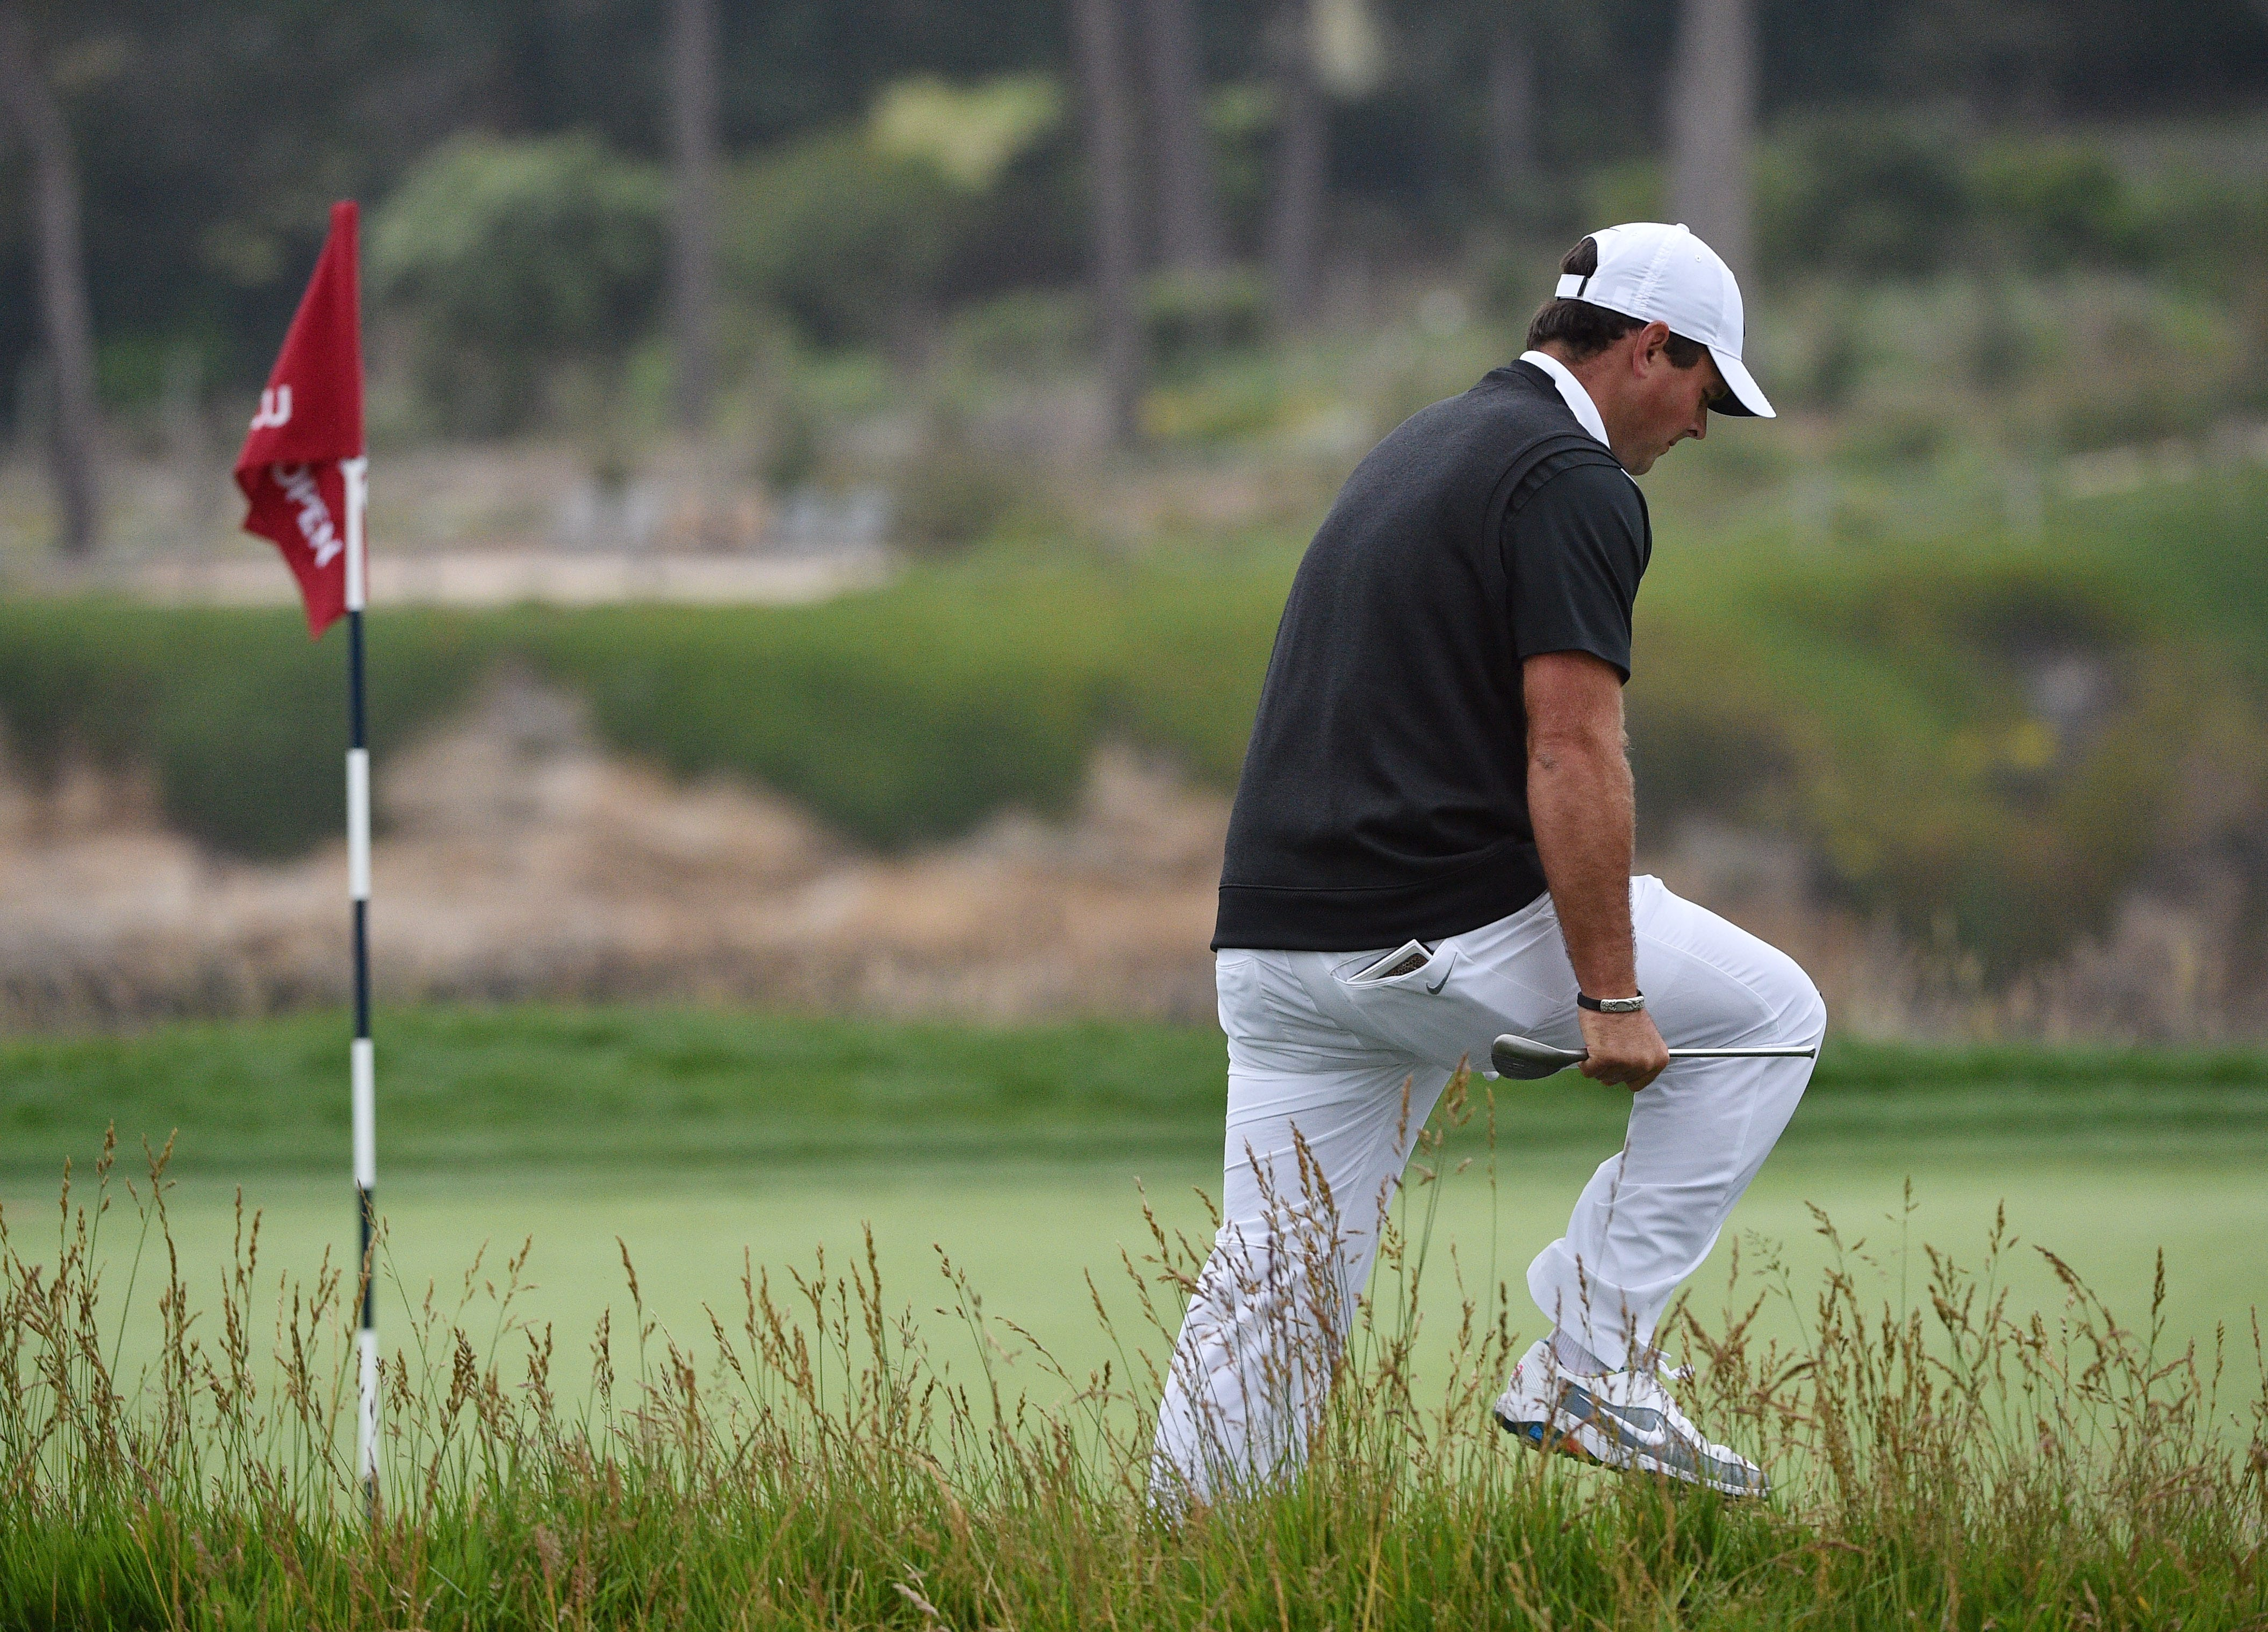 us open  patrick reed snaps club over leg on 18th at